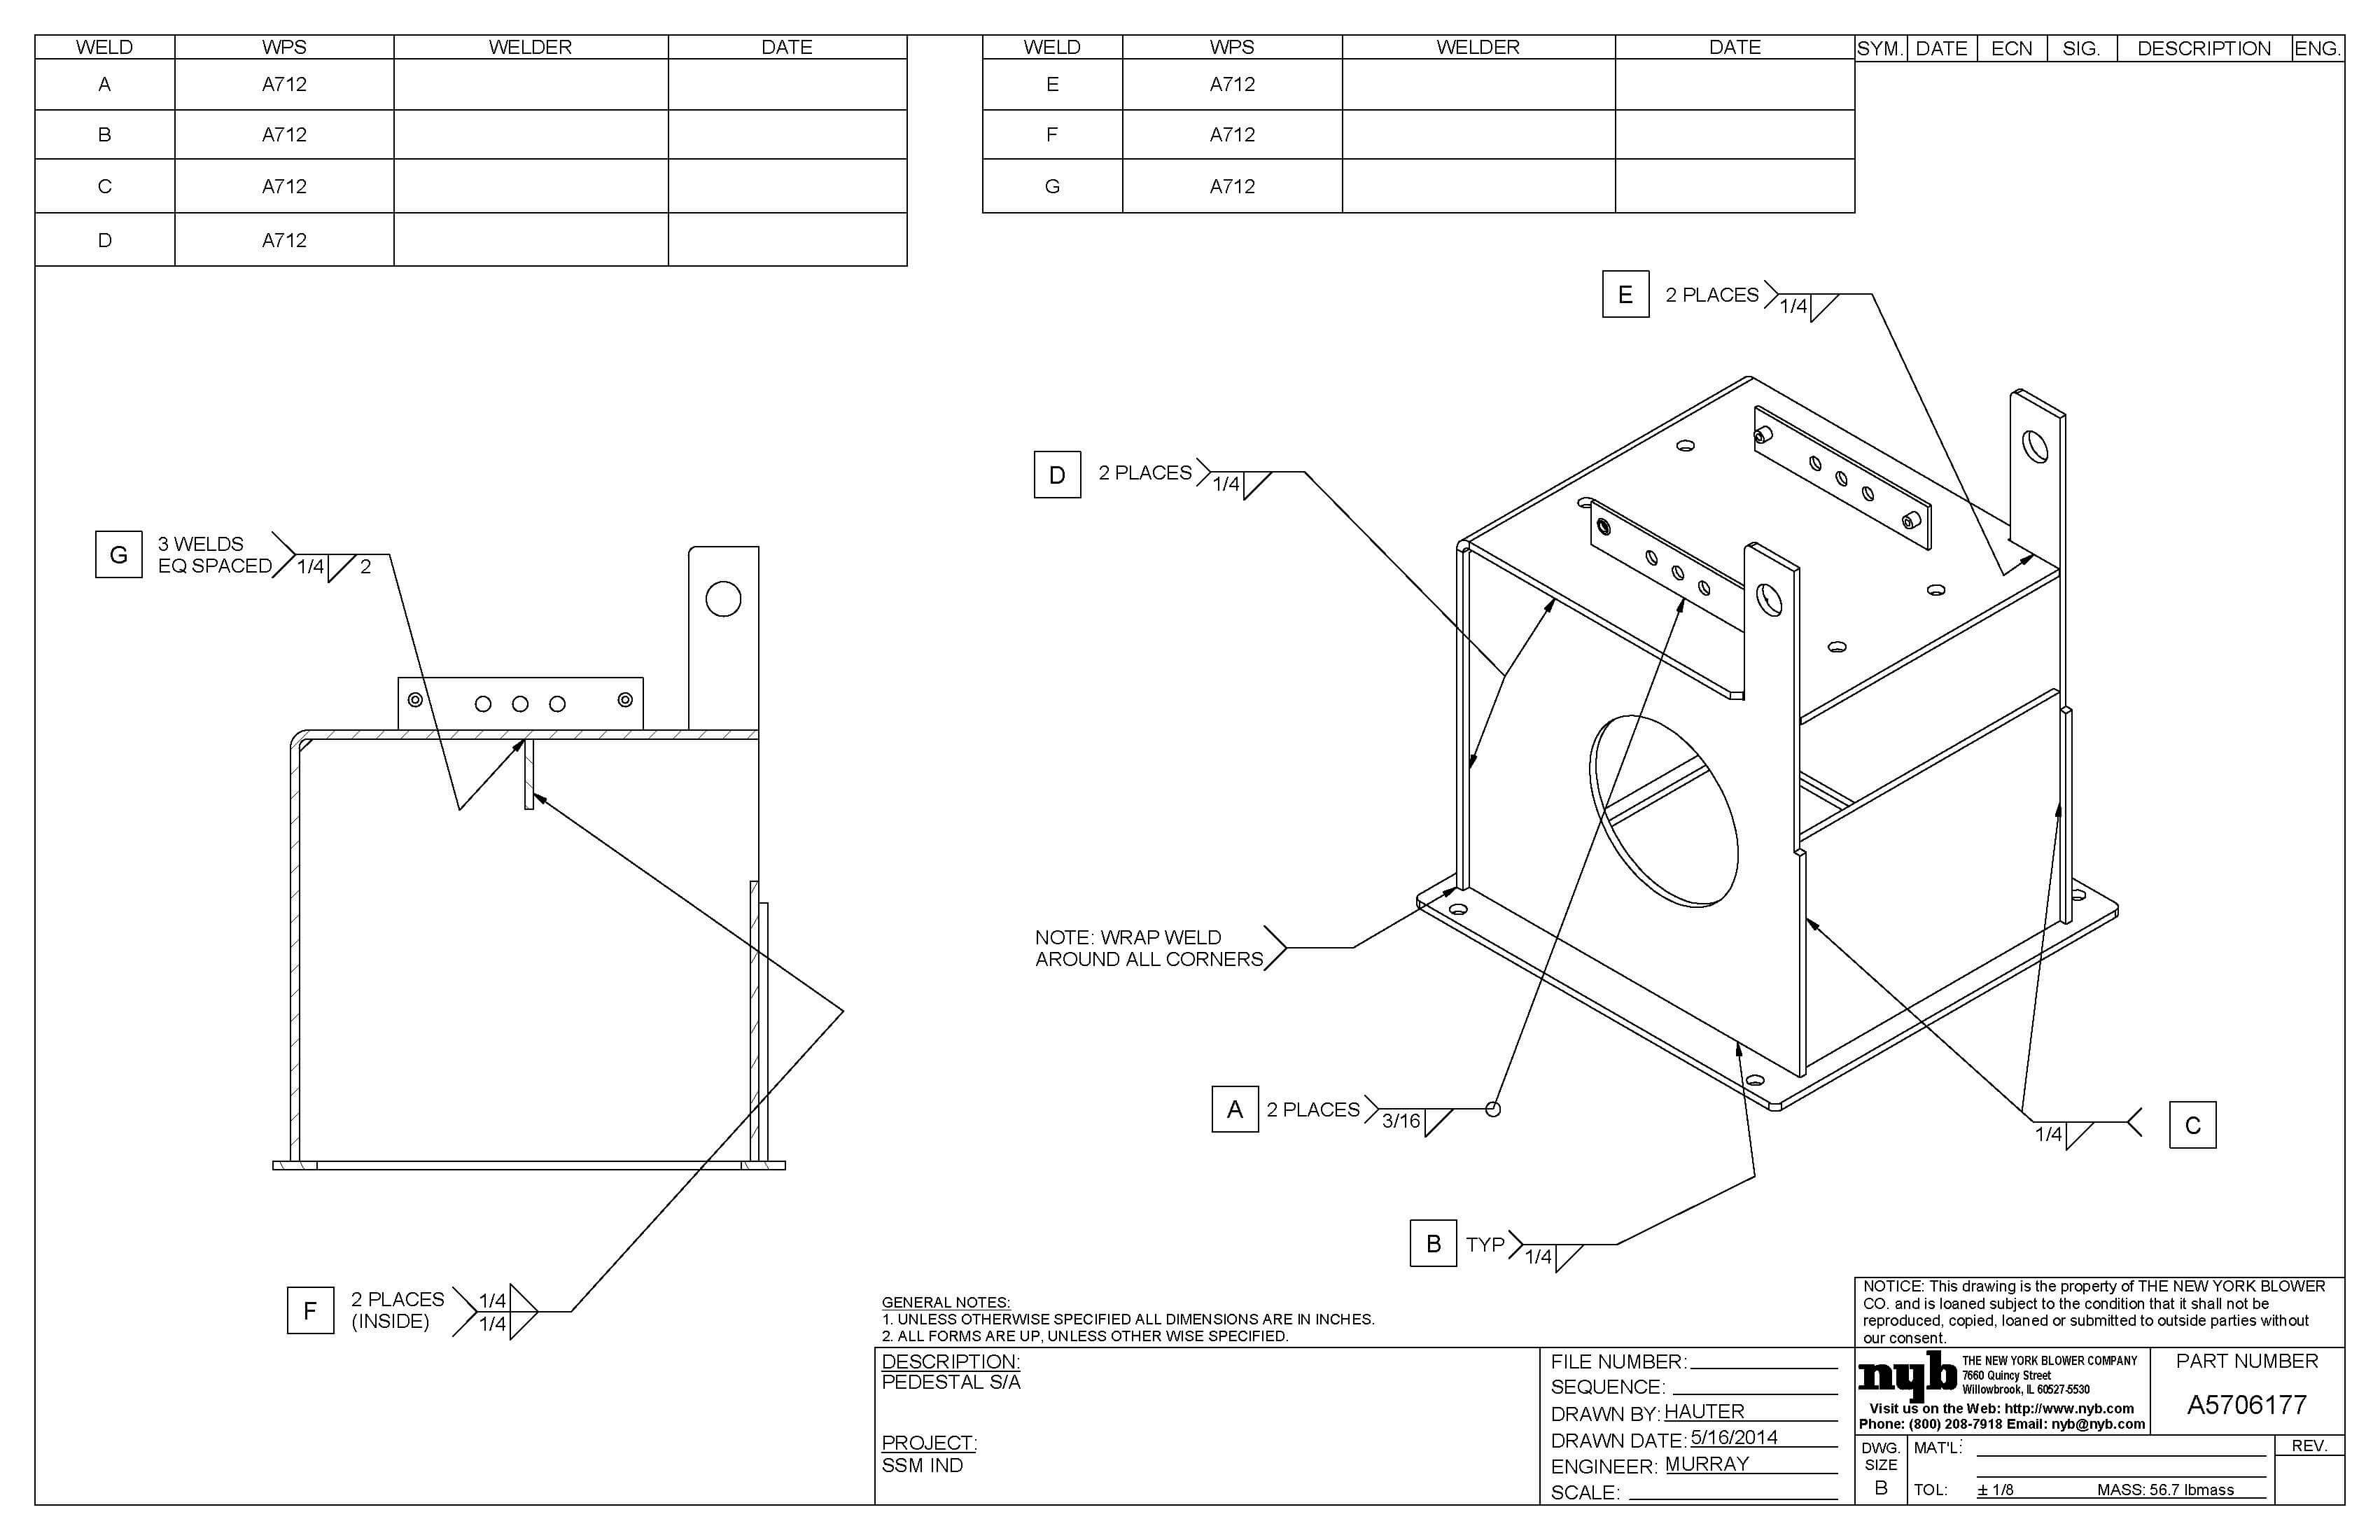 Weld Documentation New York Blower Company Diagram Of Welding Nyb Can Provide A Range Including Maps Procedure Specification Wps And Welder Qualification Records With Continuity